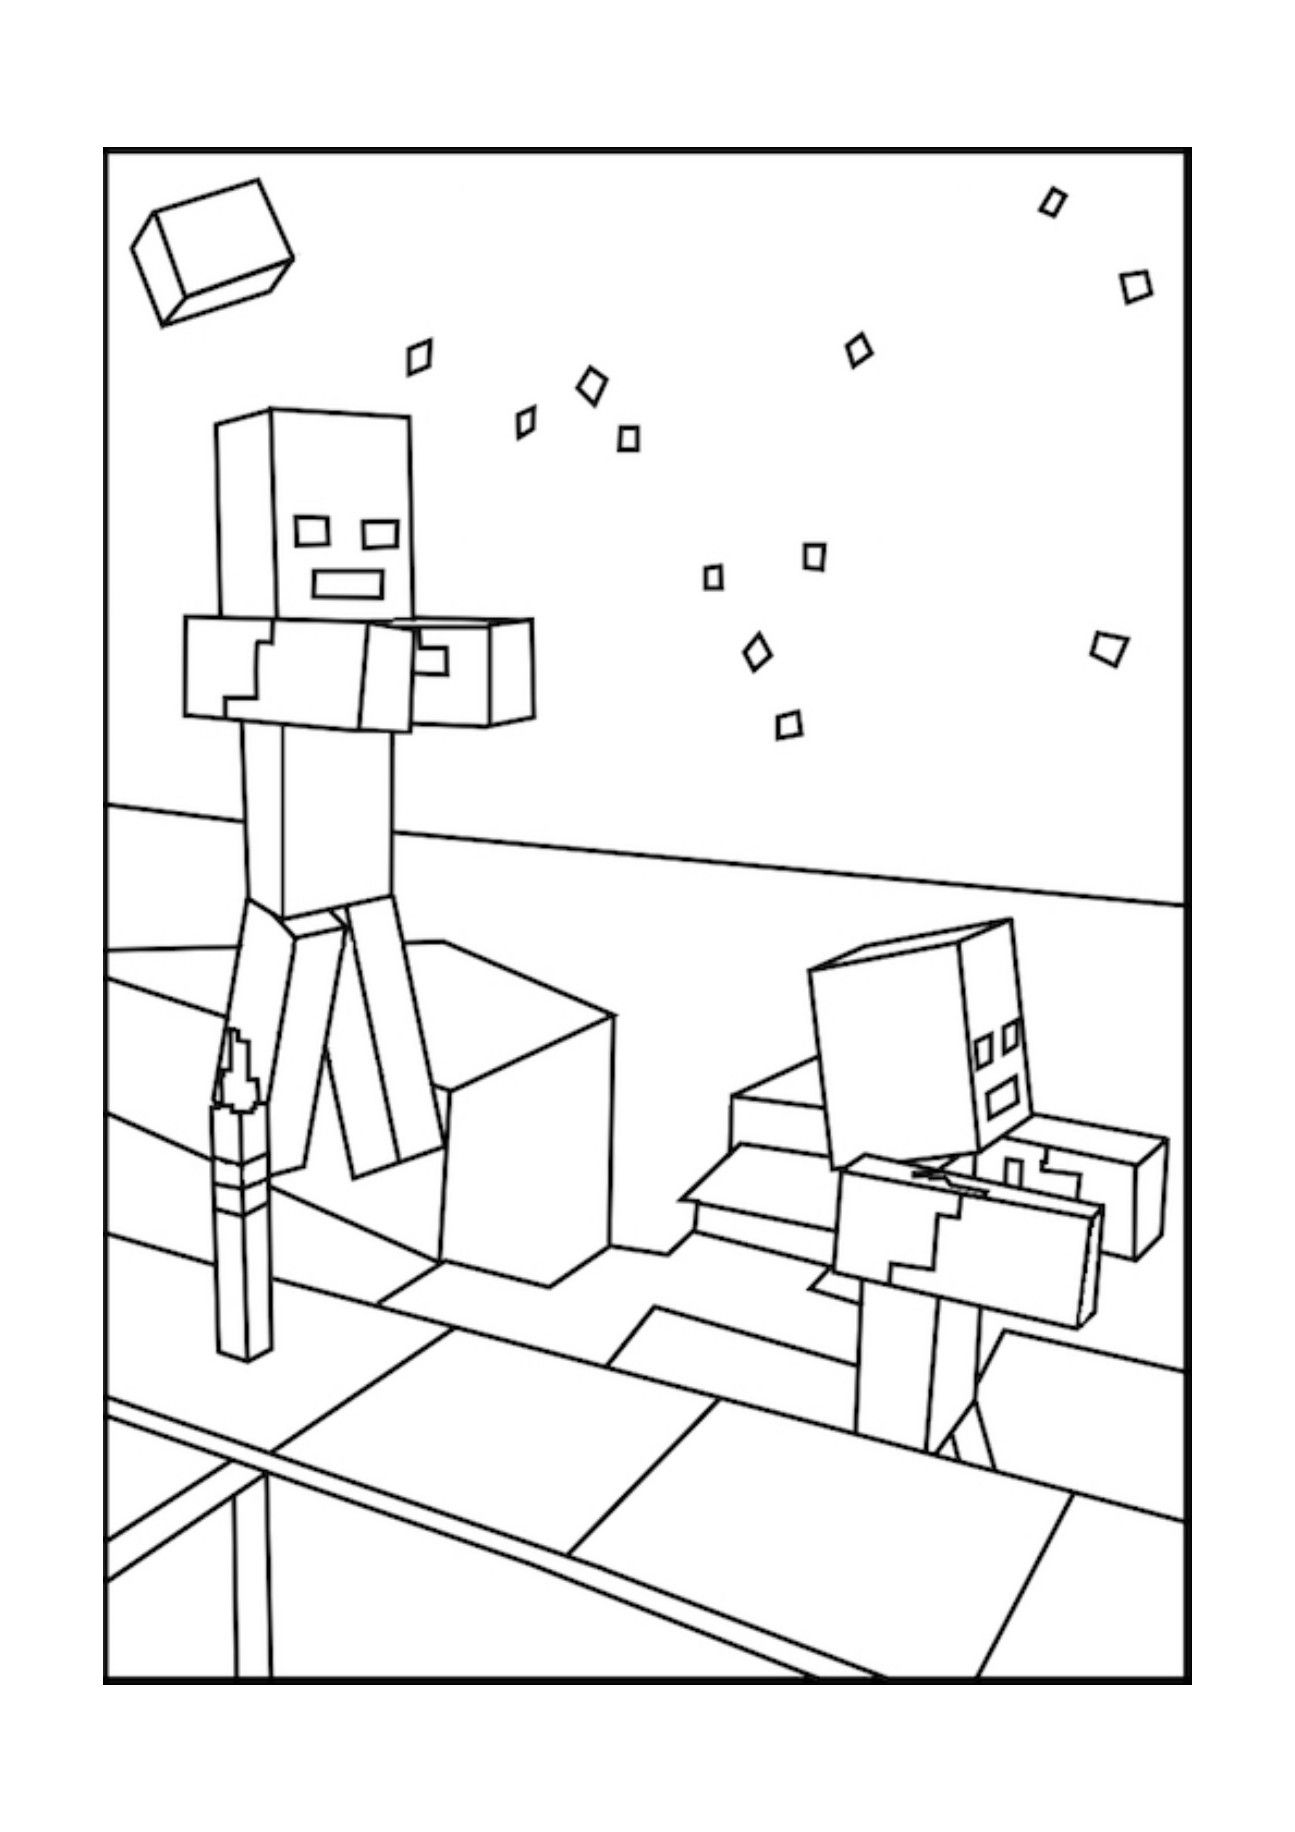 minecraft cake coloring pages minecraft villager coloring page youngandtaecom in 2020 minecraft pages coloring cake